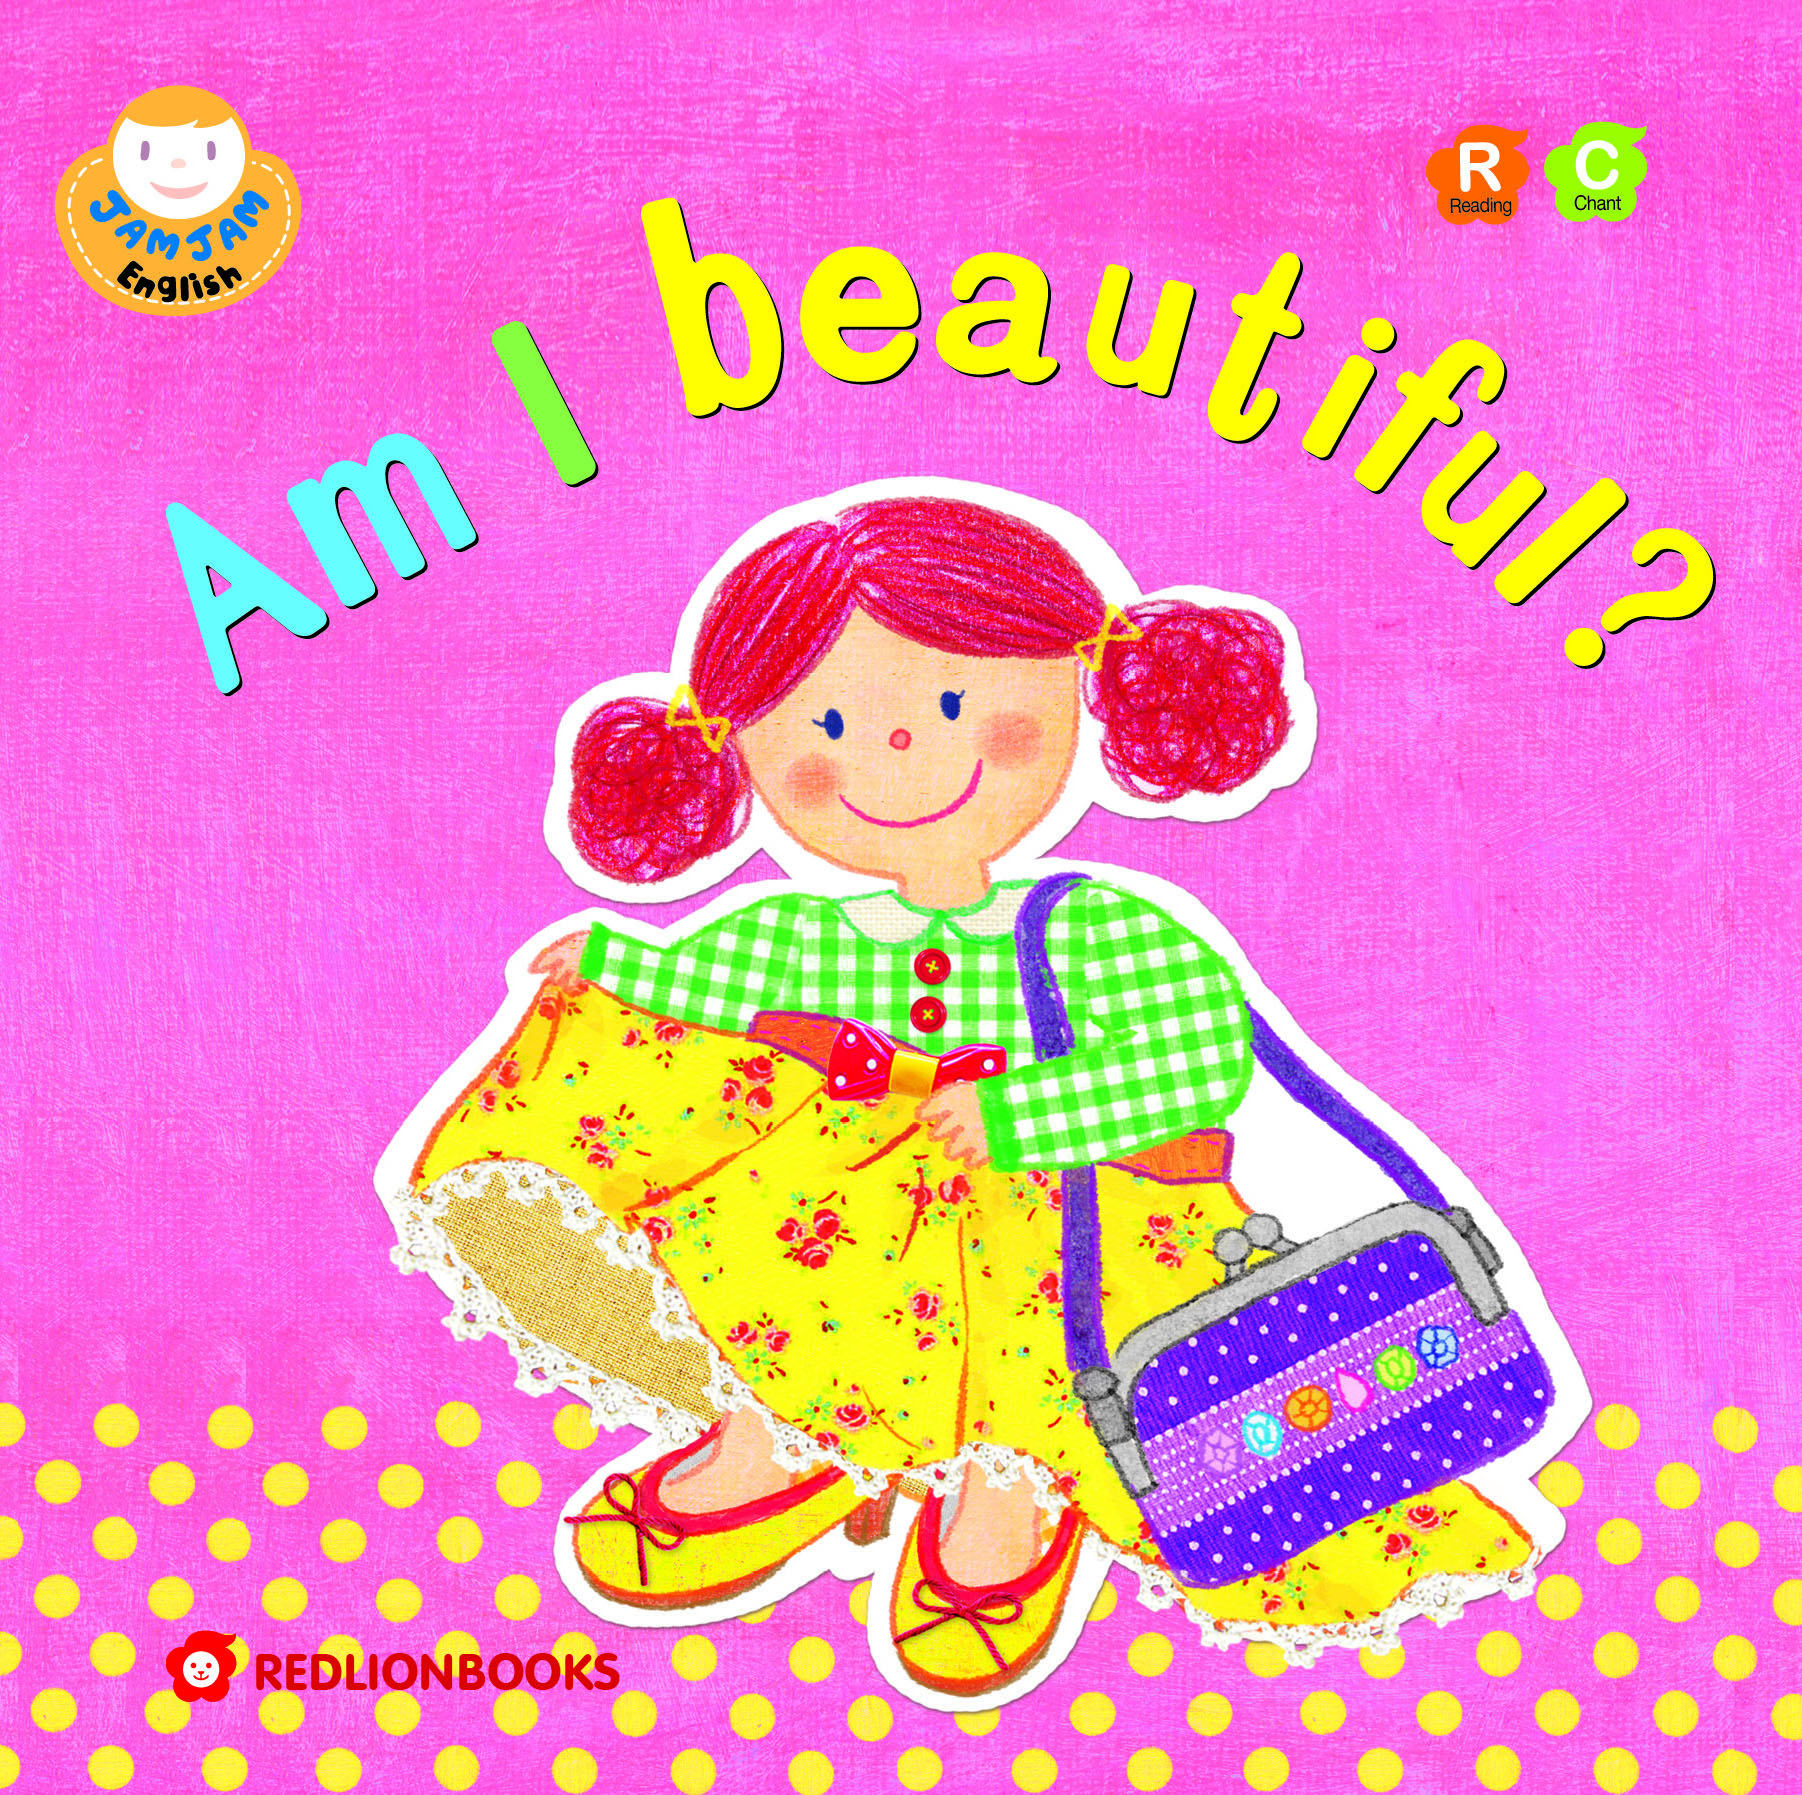 JAMJAM Enaglish AM I BEATIFUL?